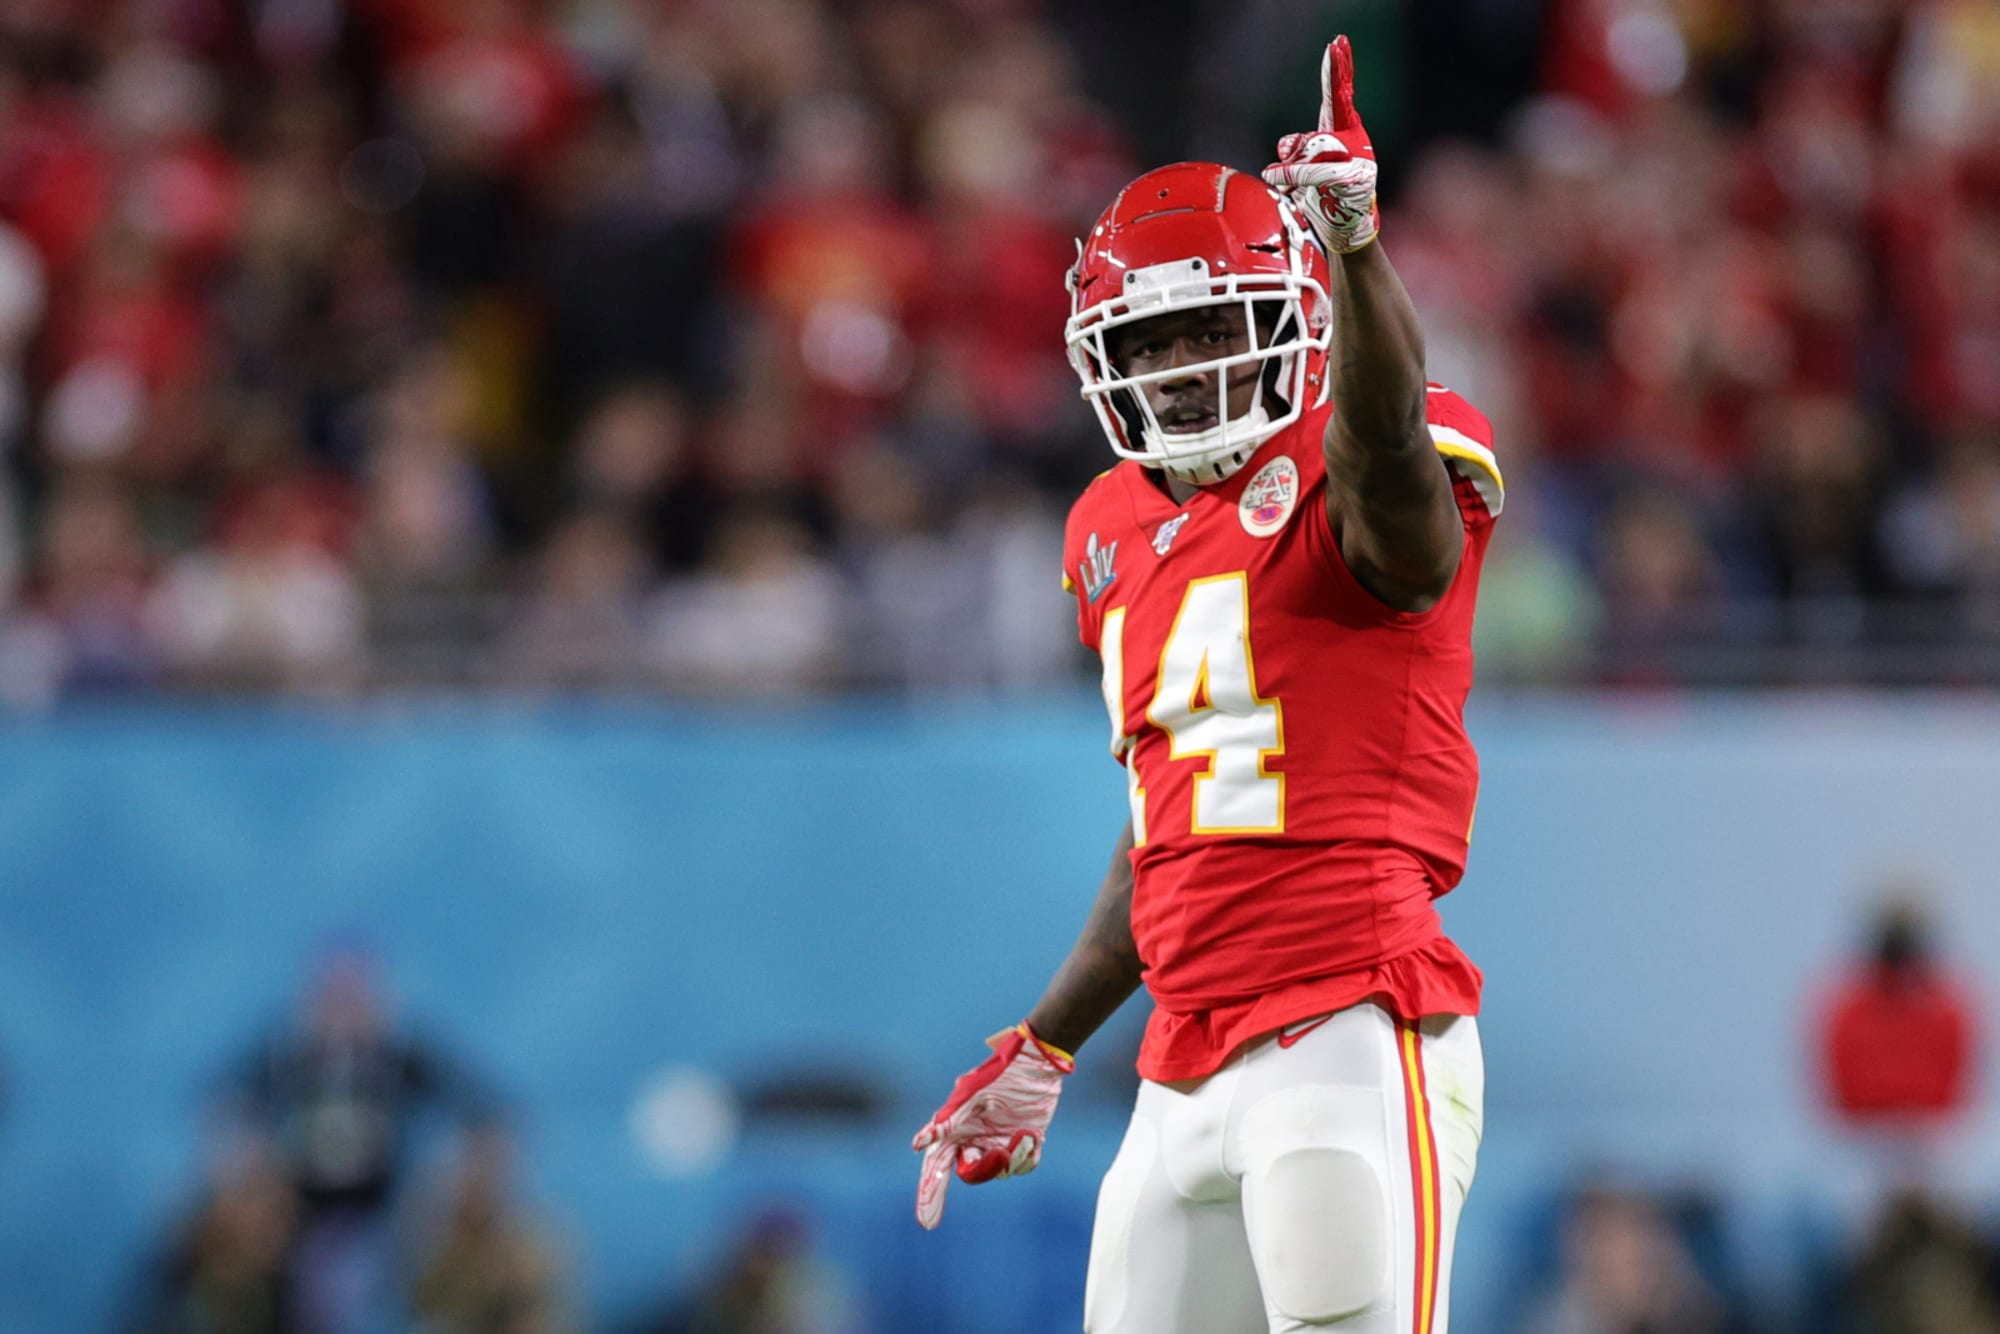 K.C. Chiefs face much easier free agency period than last spring